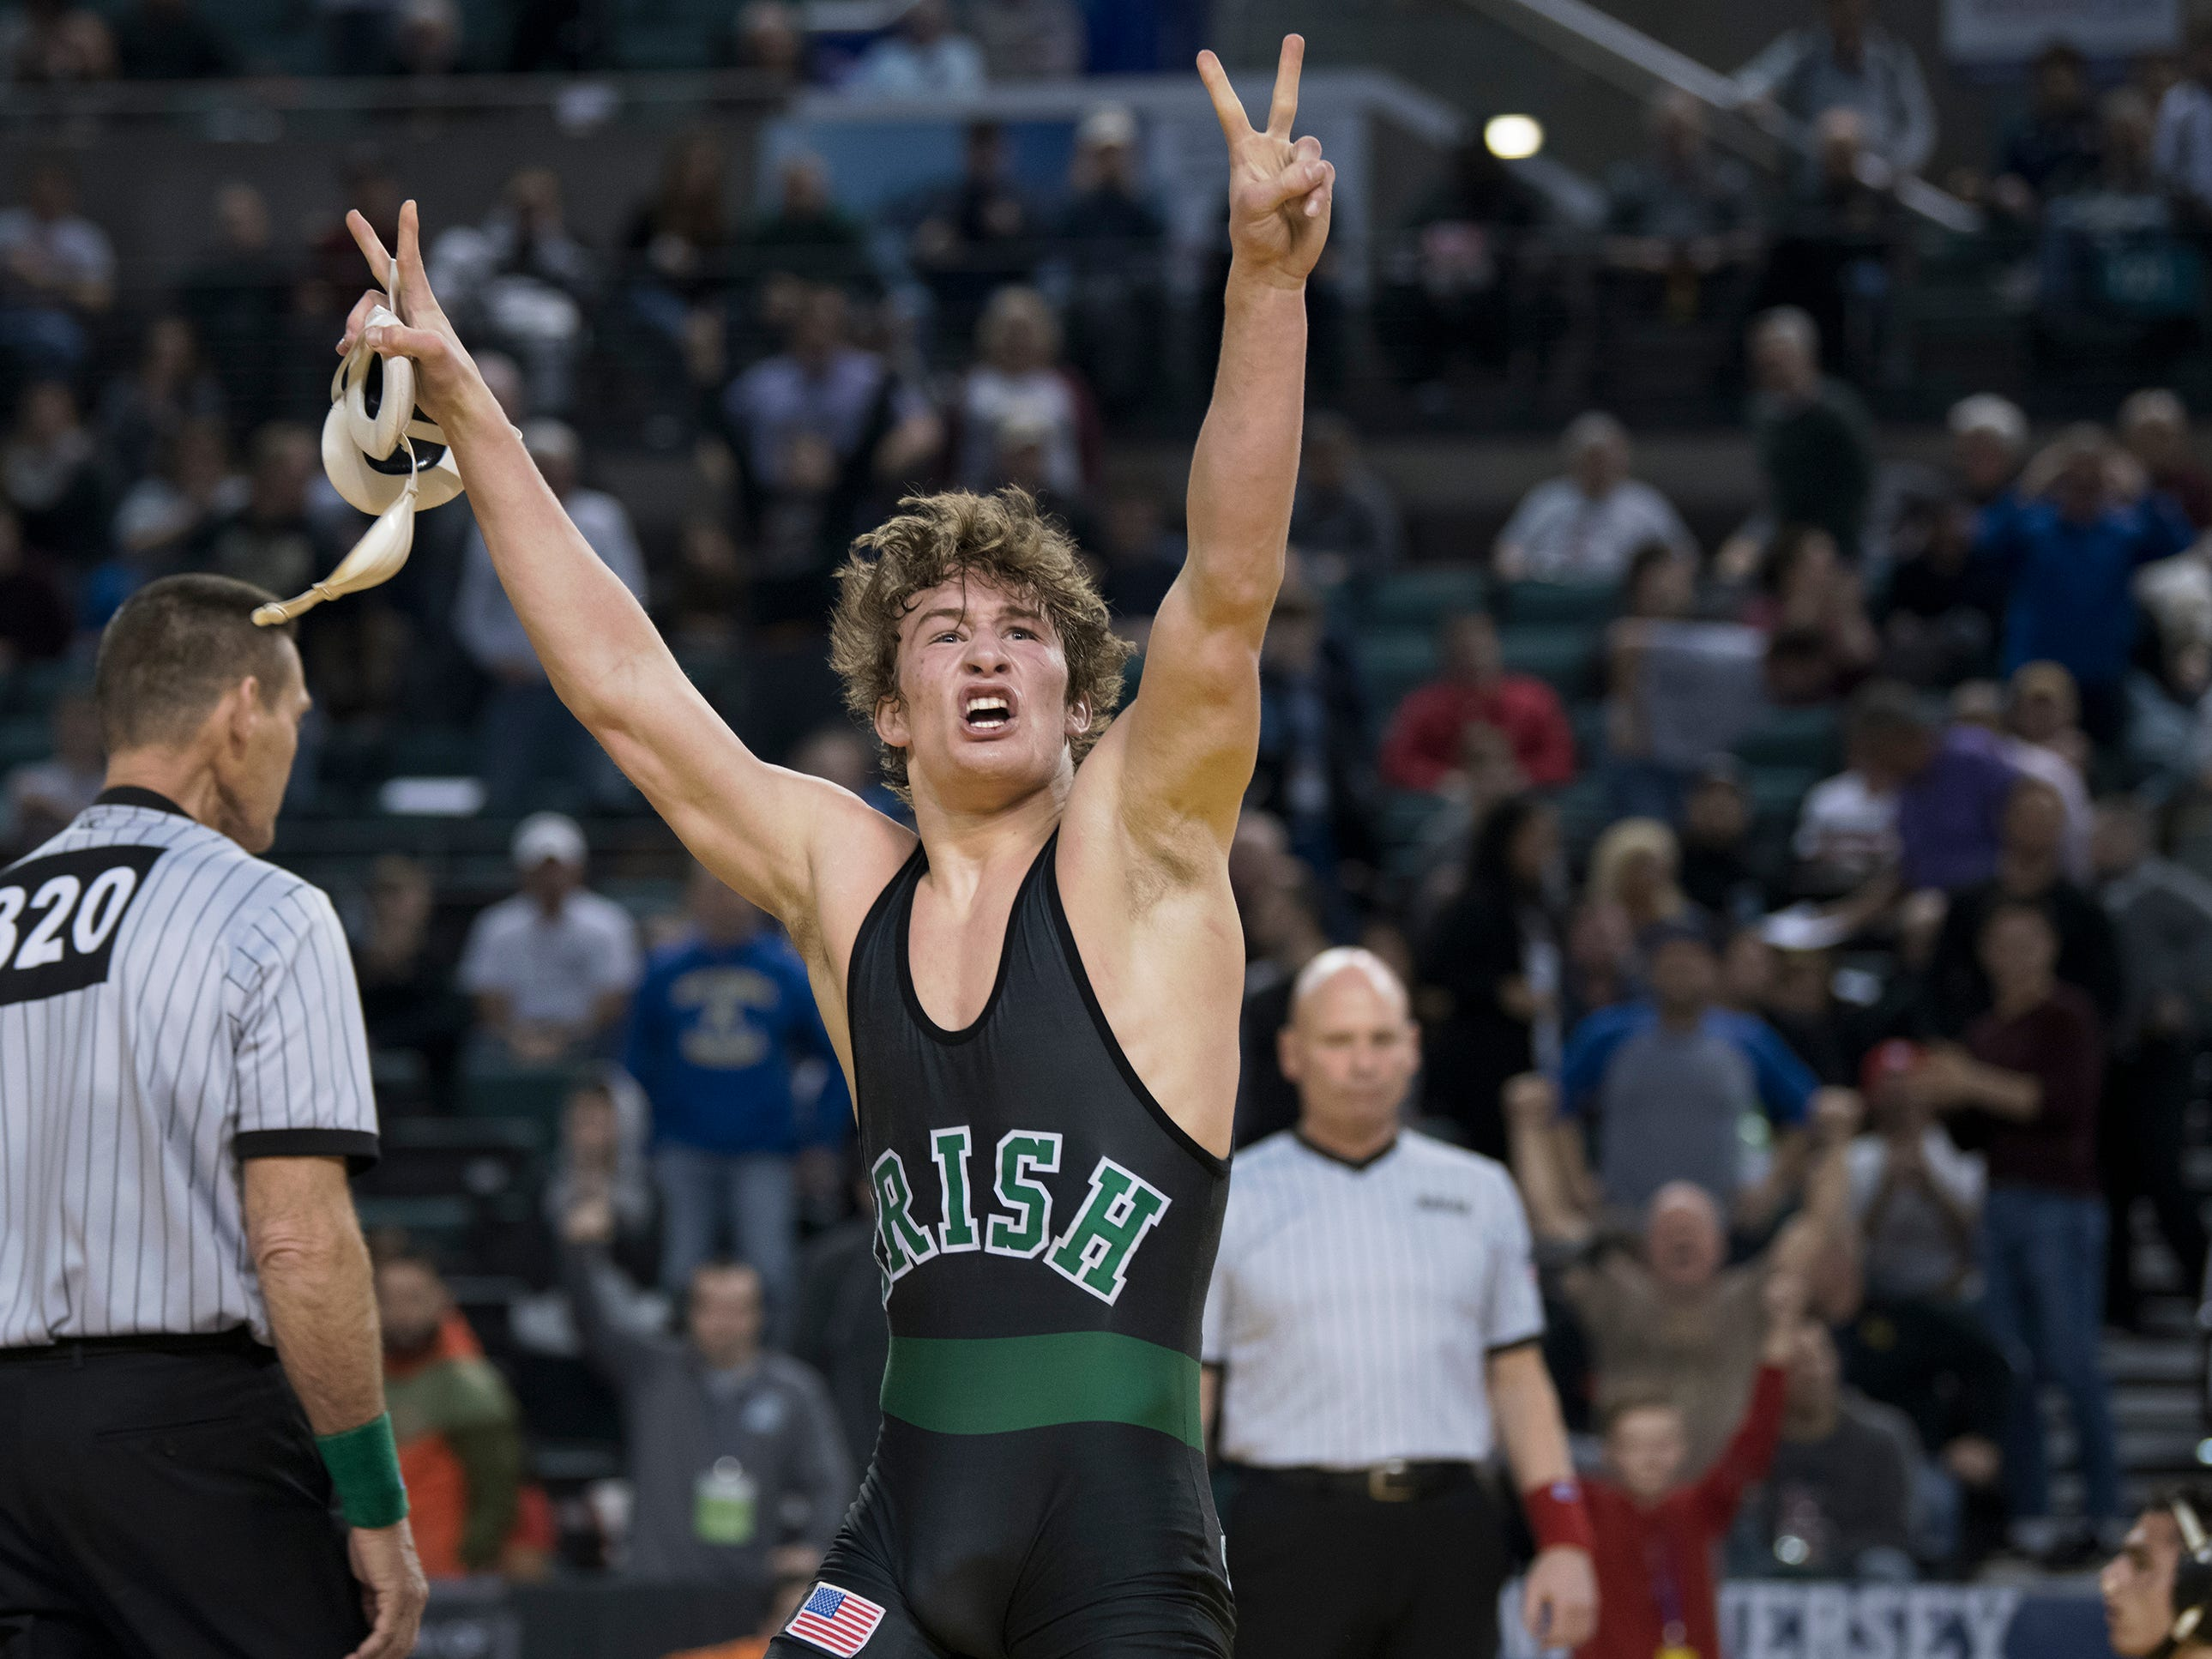 Camden Catholic's Lucas Revano celebrates his second state title after he pinned DePaul's Ricky Cabanillas in overtime of the 145 lb. championship bout of the 2019 NJSIAA State Wrestling Championships tournament held at Boardwalk Hall in Atlantic City on Saturday, March 2, 2019.